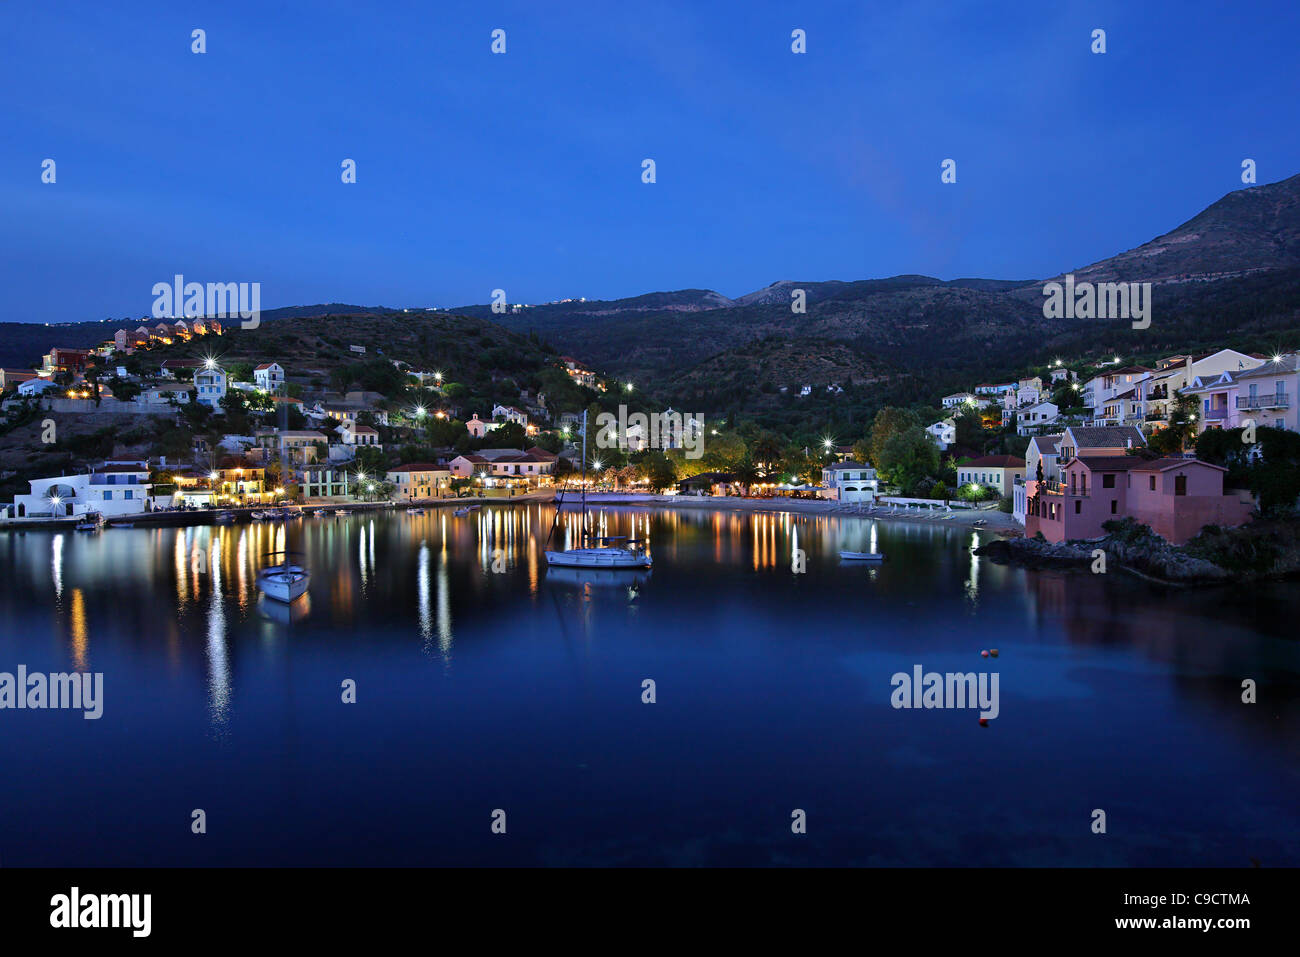 Assos (or 'Asos') one of the most beautiful villages of Kefalonia, on the north part of the island, at night. - Stock Image